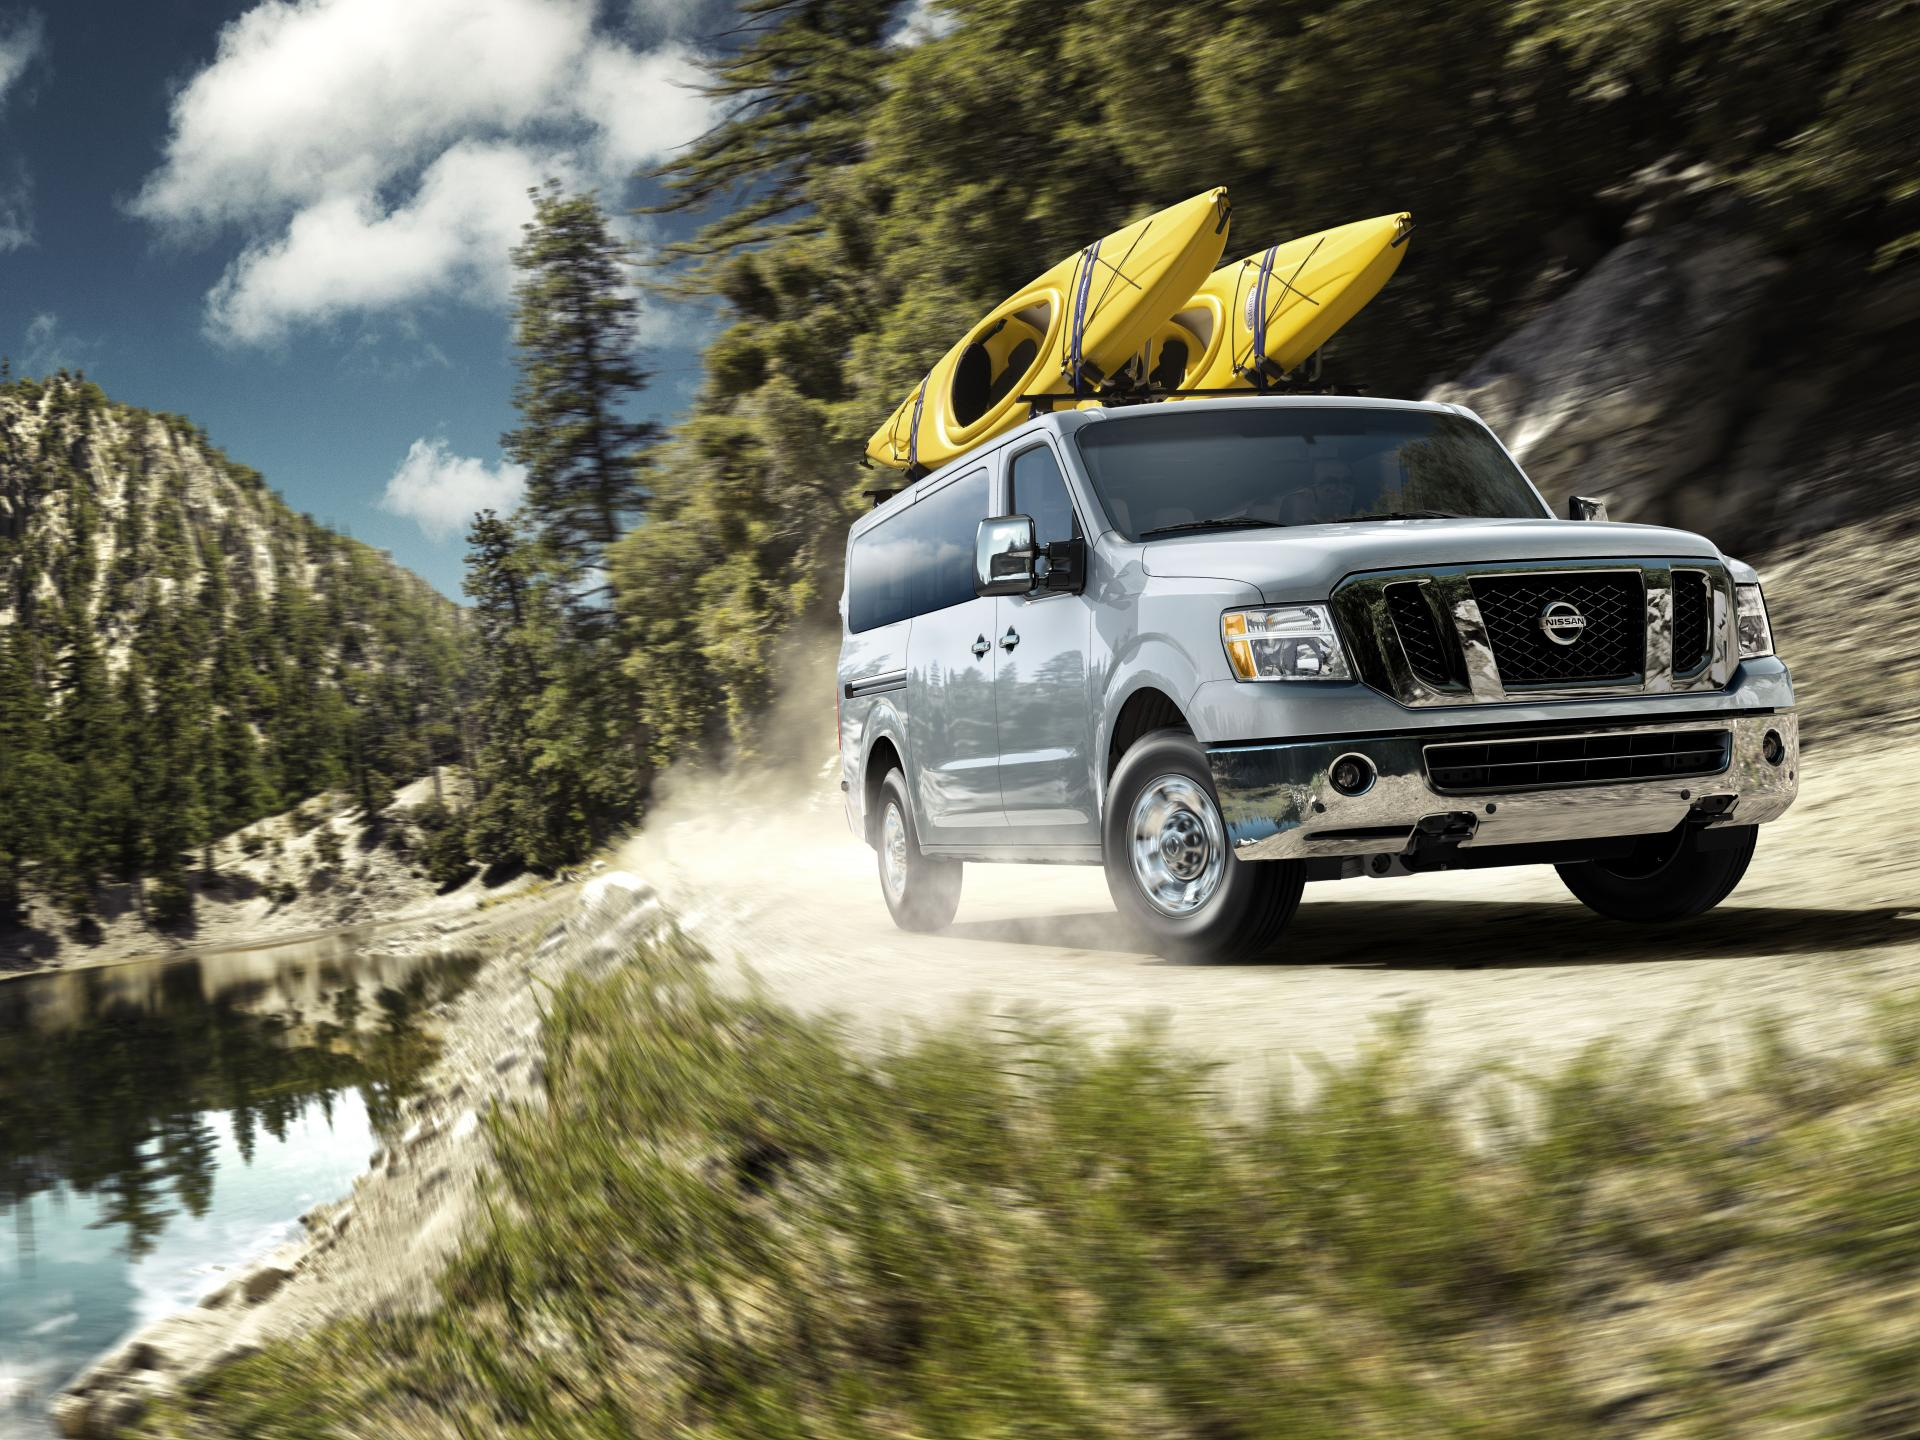 2012 Nissan NV3500 HD News and Information